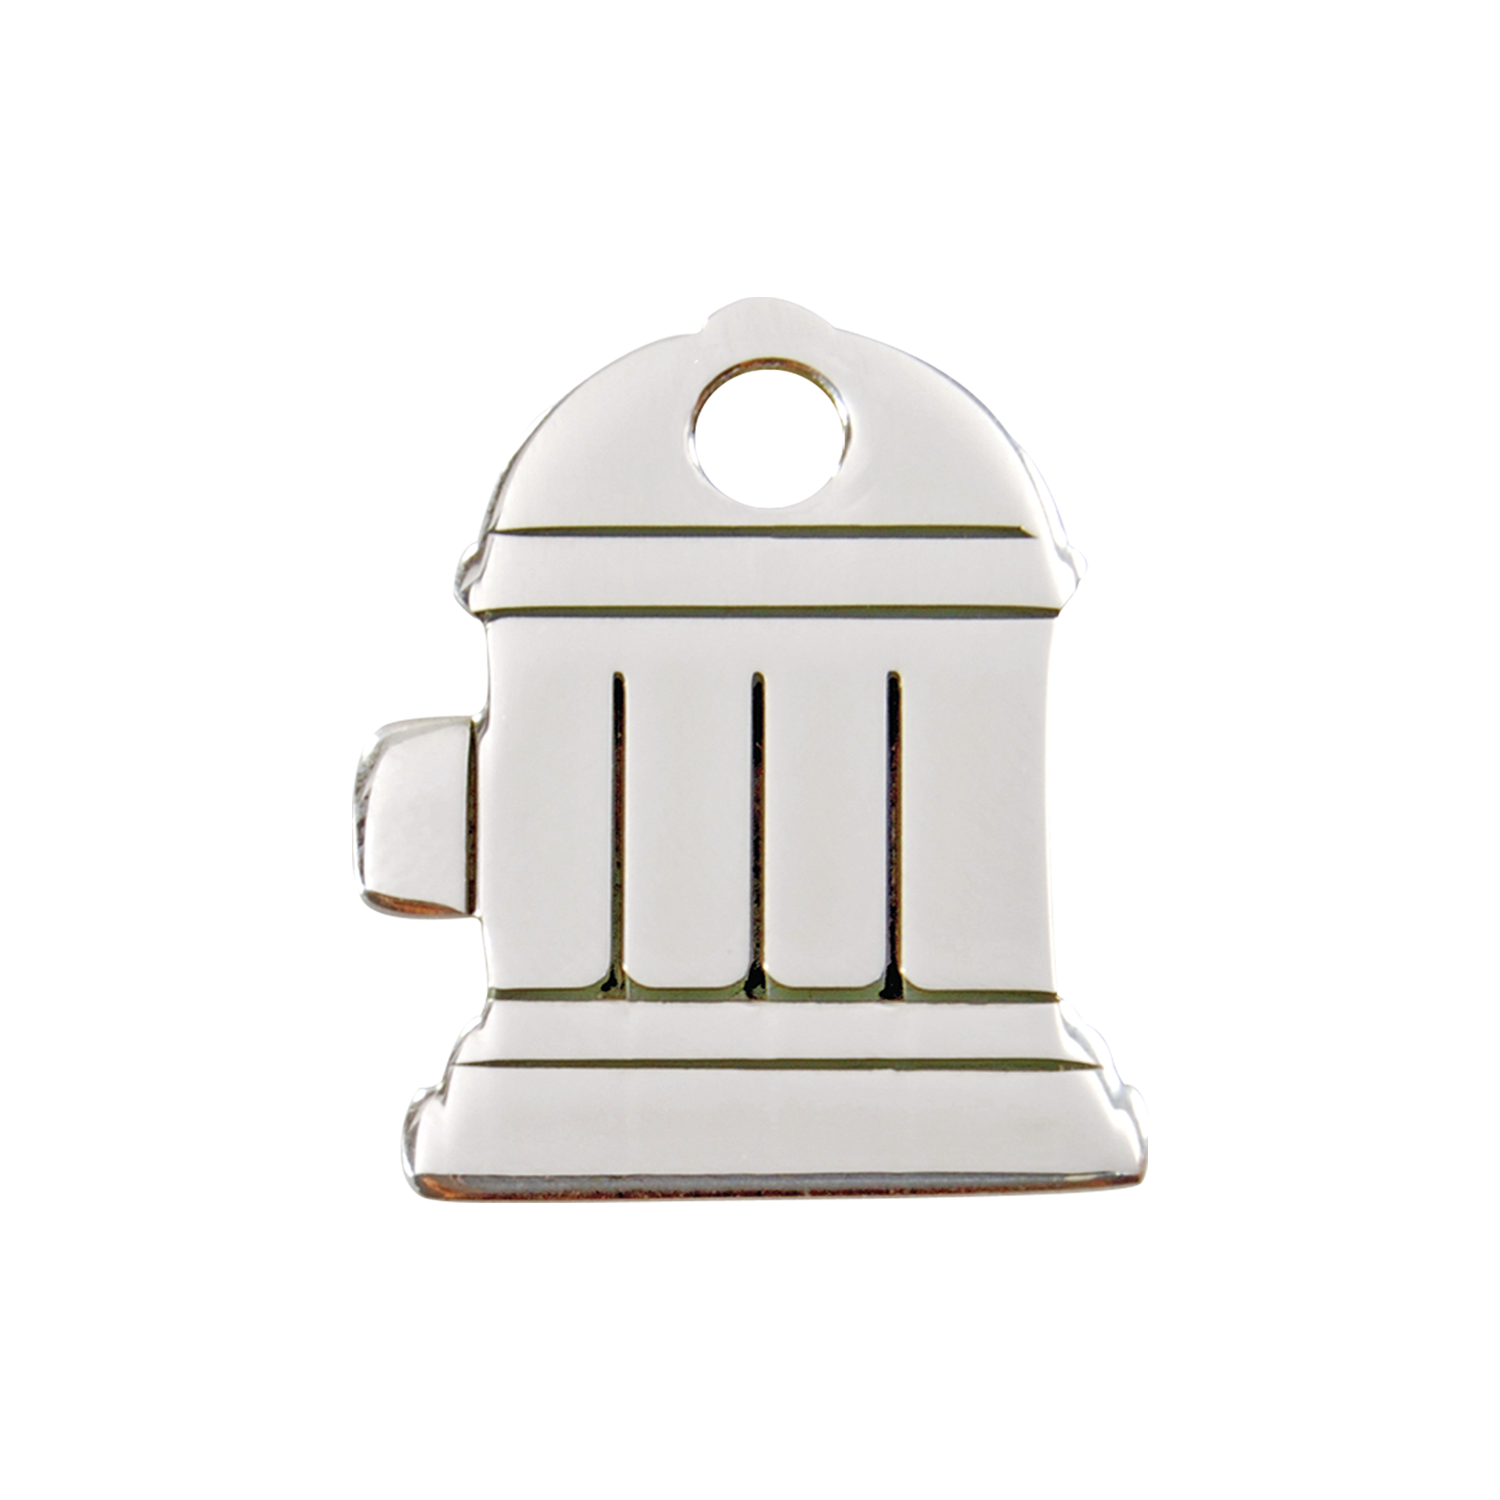 Fire Hydrant Medium Flat Stainless Steel Tag>